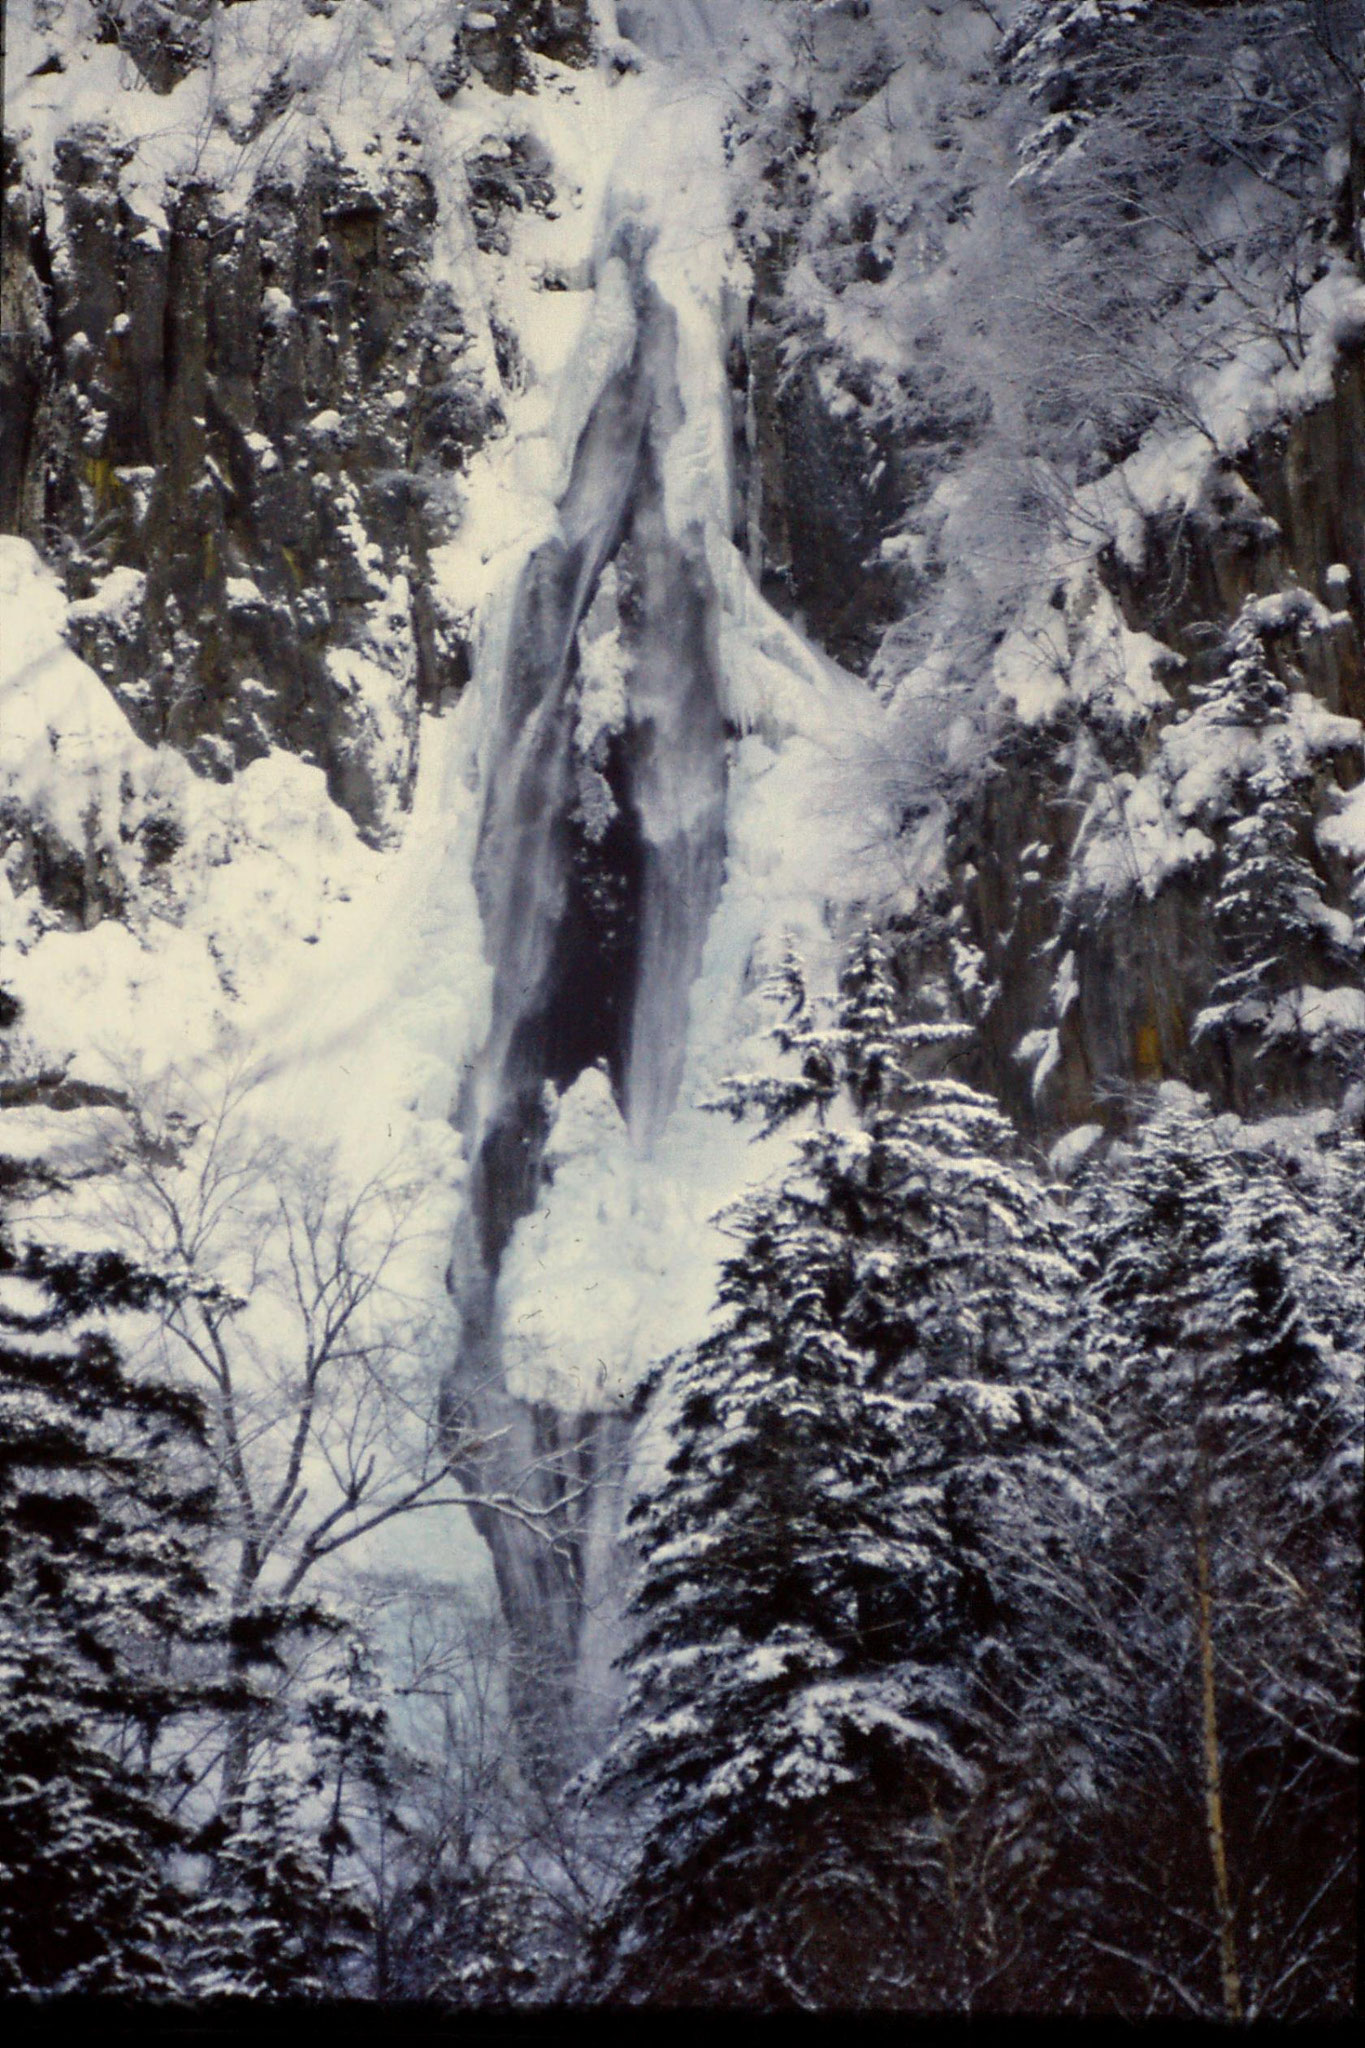 12/1/1989: 14: Sounkyo Onsen Gorge, Ginga-no-taki